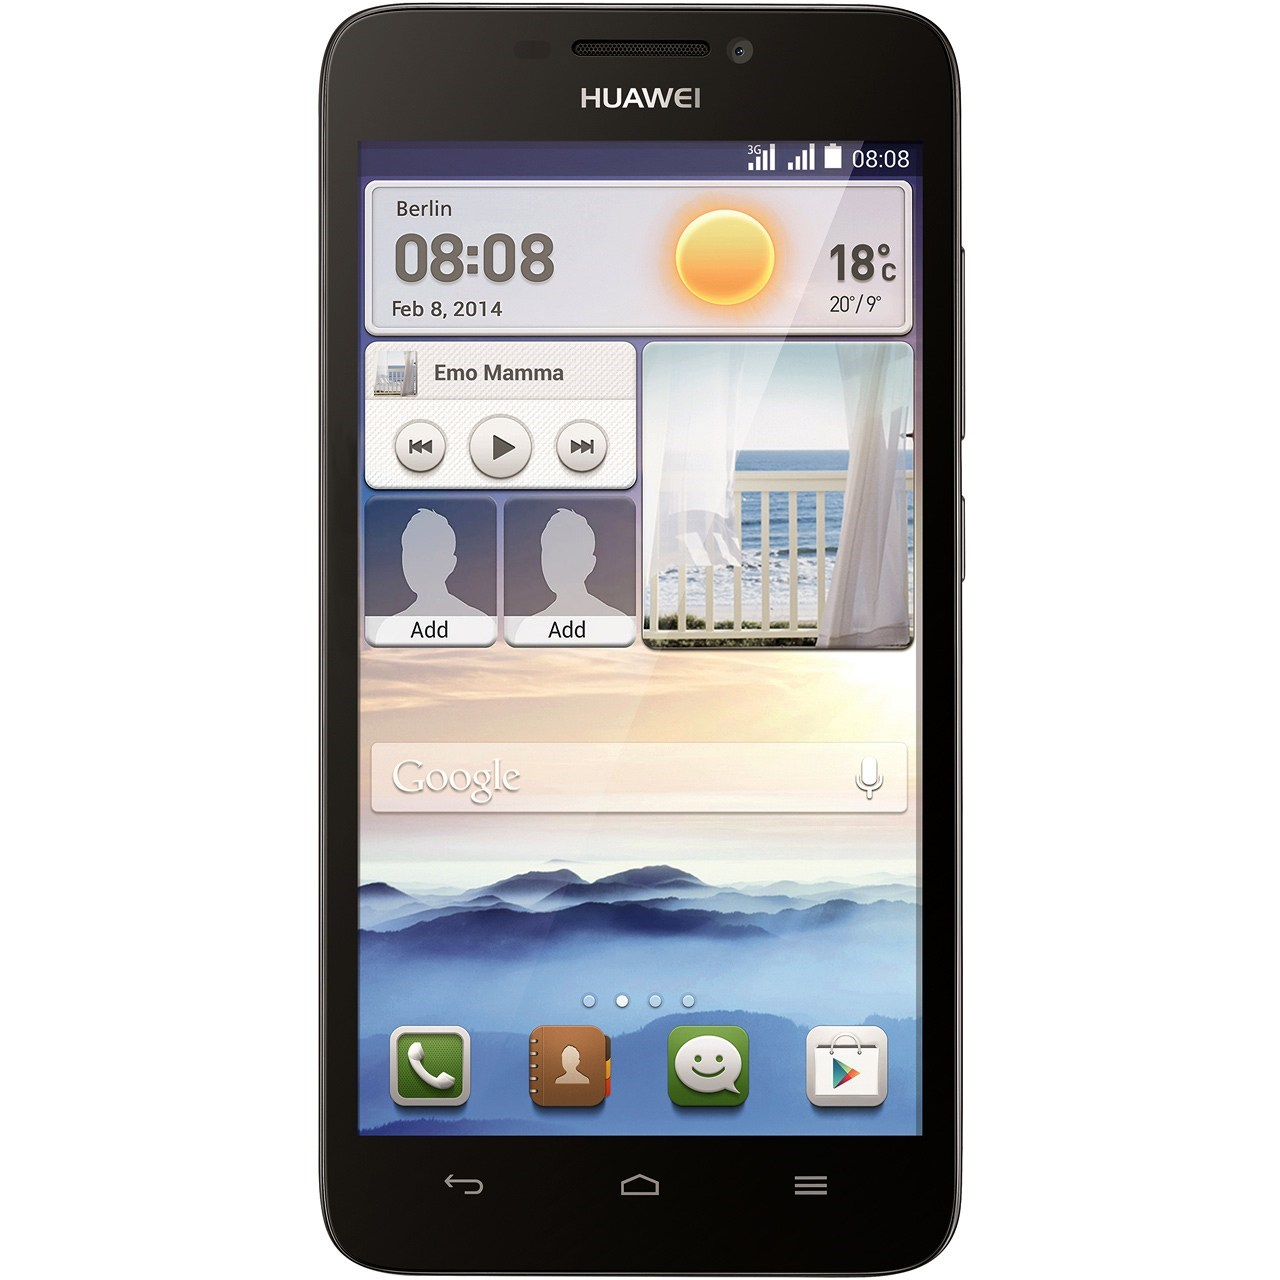 hide Glass Screen Protector For Huawei Ascend G630 Dual SIM